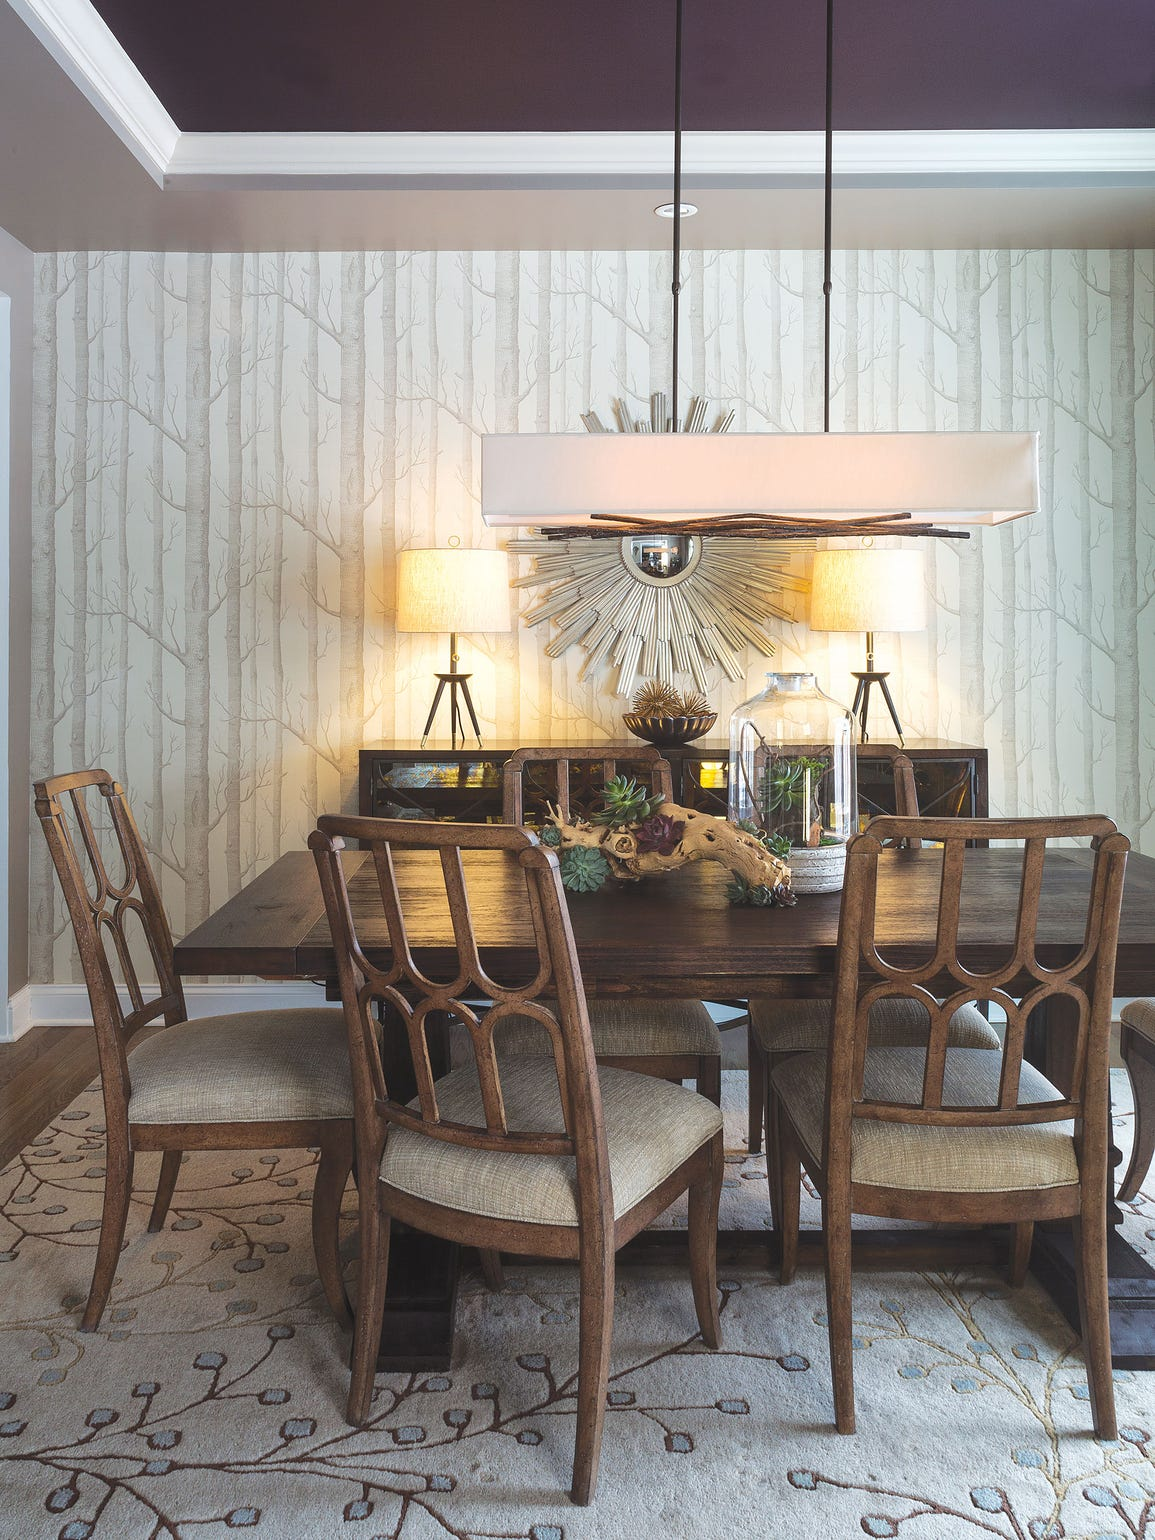 In this Pittsford home, designer Jason Longo fused